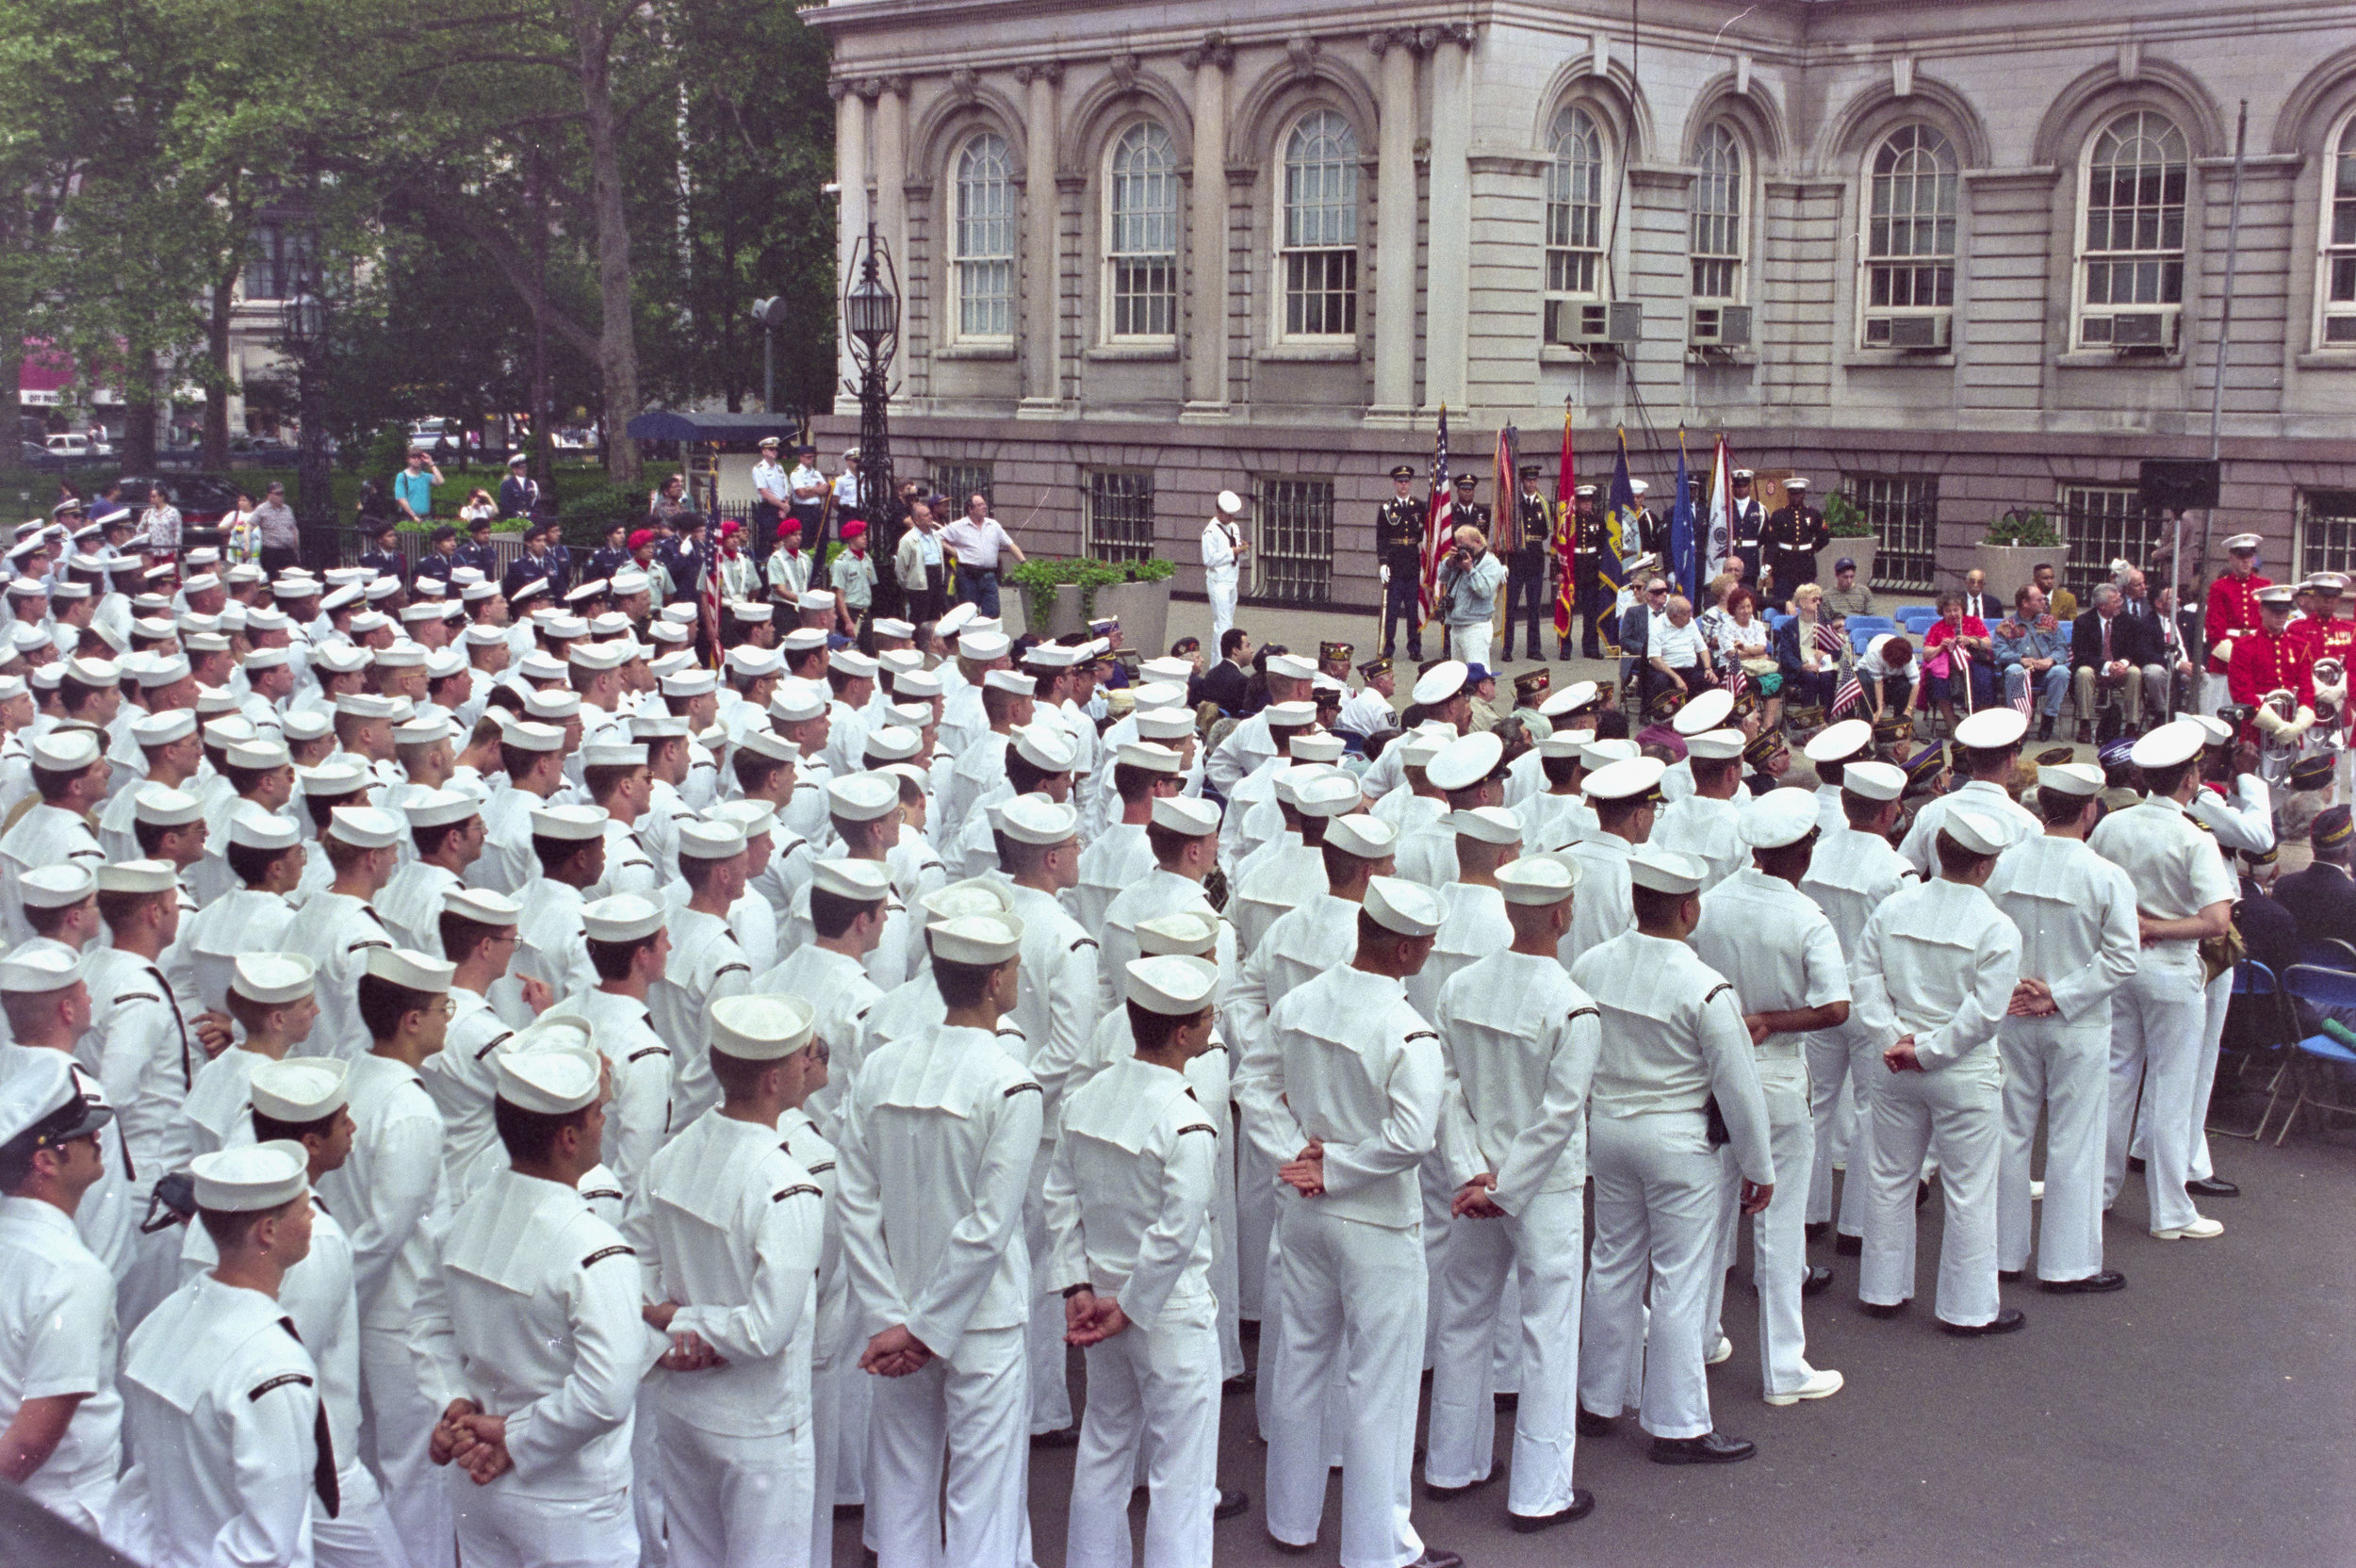 U.S. Navy sailors in formation, City Hall Plaza, May 25, 1995, photographer Joseph Reyes. Mayor Rudolph W. Giuliani Collection, NYC Municipal Archives.